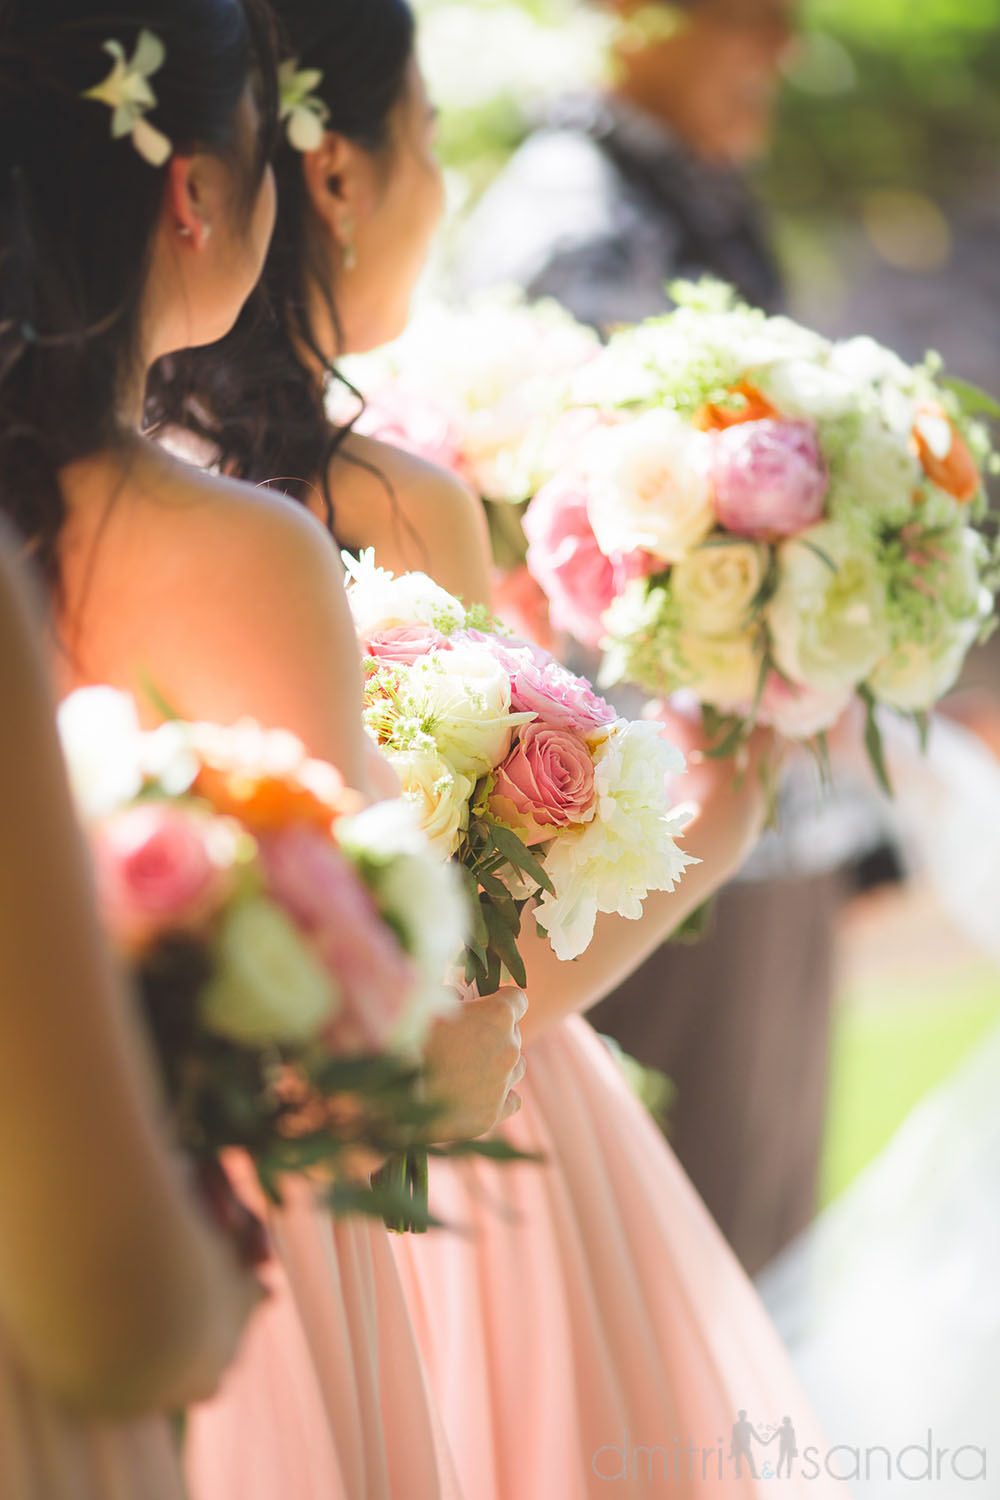 Soft pink bridesmaids bouquets by Bliss Wedding Design - photo by Dmitri & Sandra